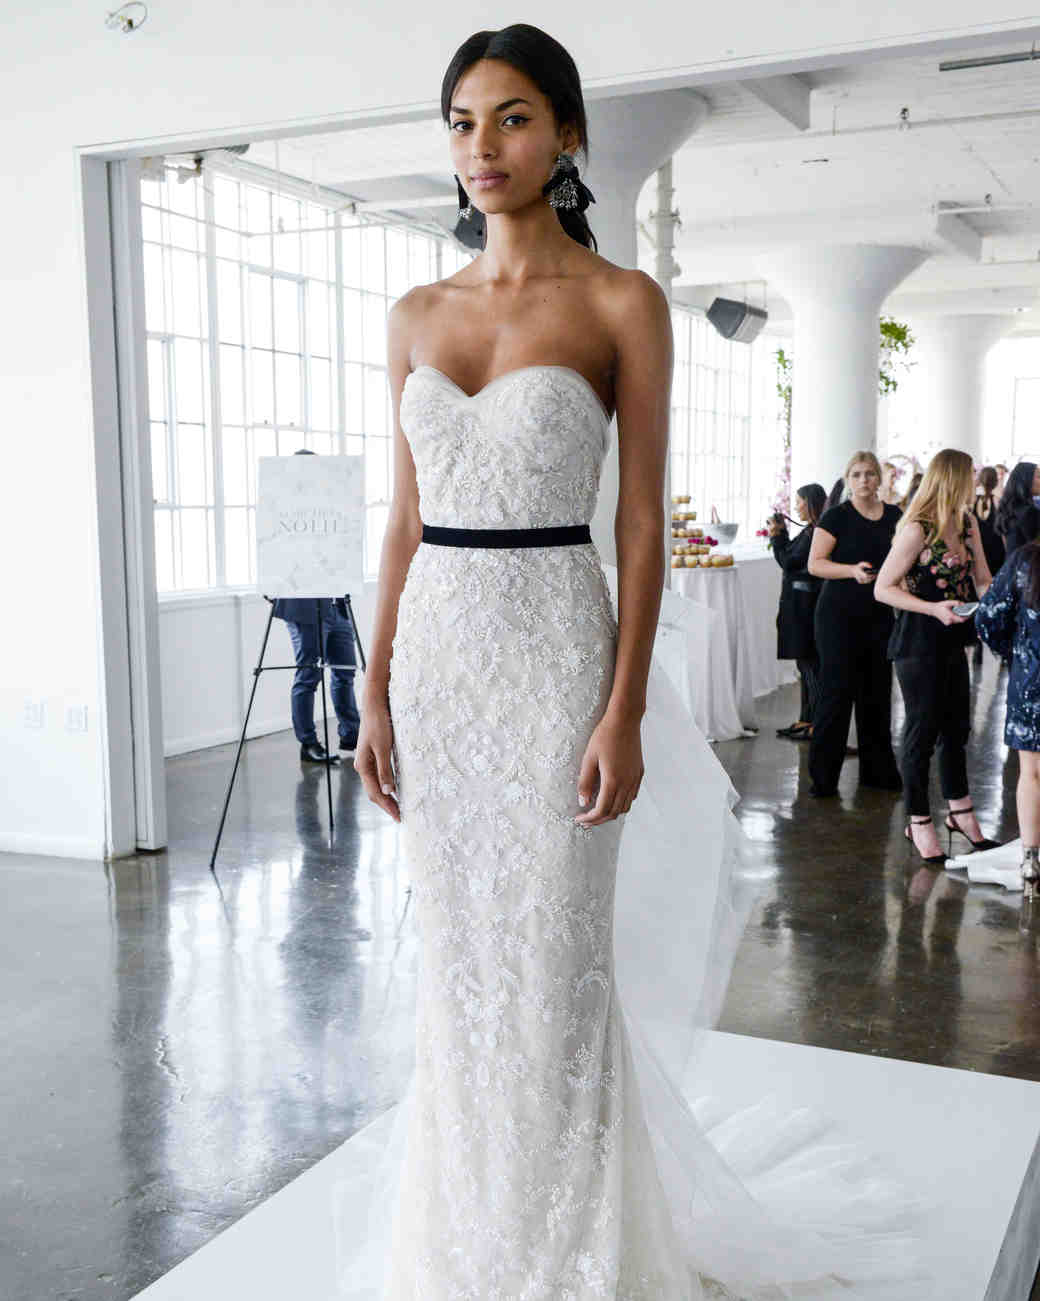 marchesa-couture-wedding-dress-spring2018-6339053-001_vert.jpg